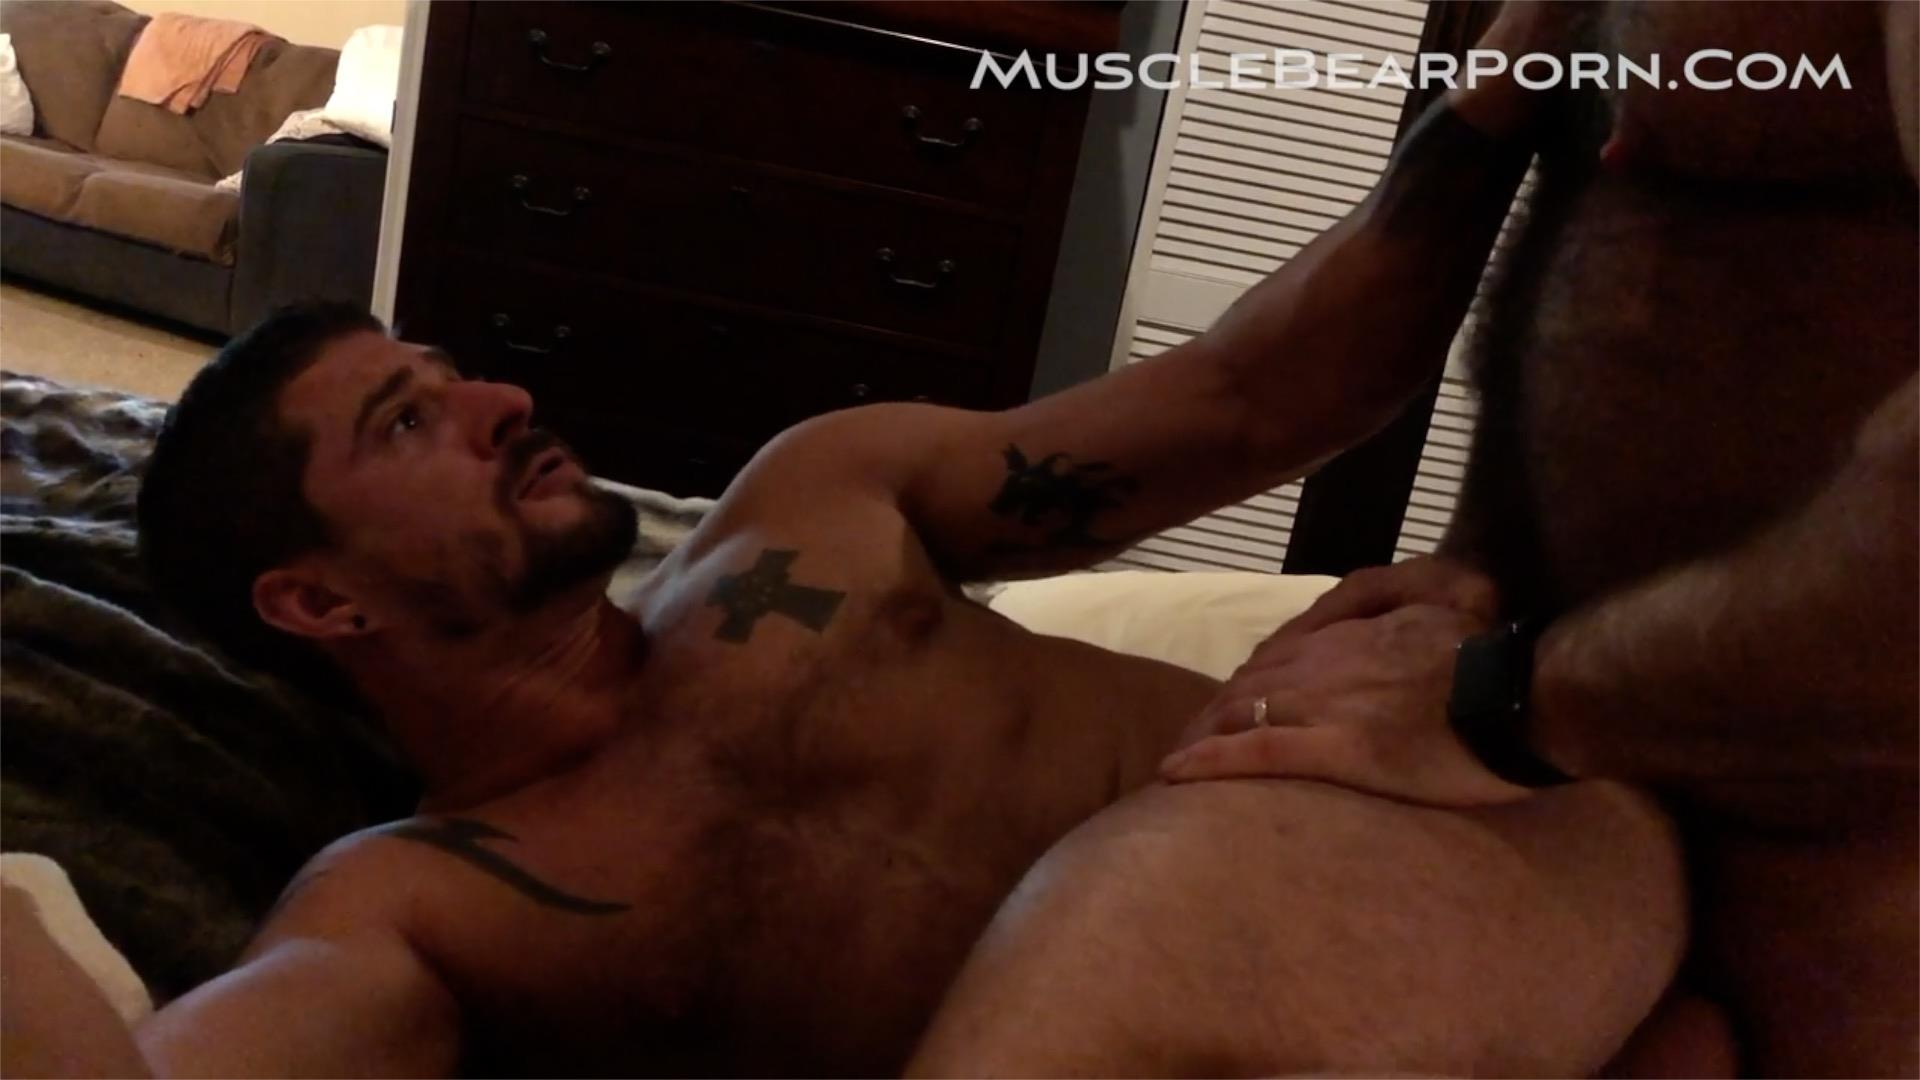 Muscle-Bear-Porn-Sean-Maygers-and-Will-Angell-Bearback-Homemade-Sex-Video-2 Sean Maygers Is Daddy Will Angell's Piss Pig